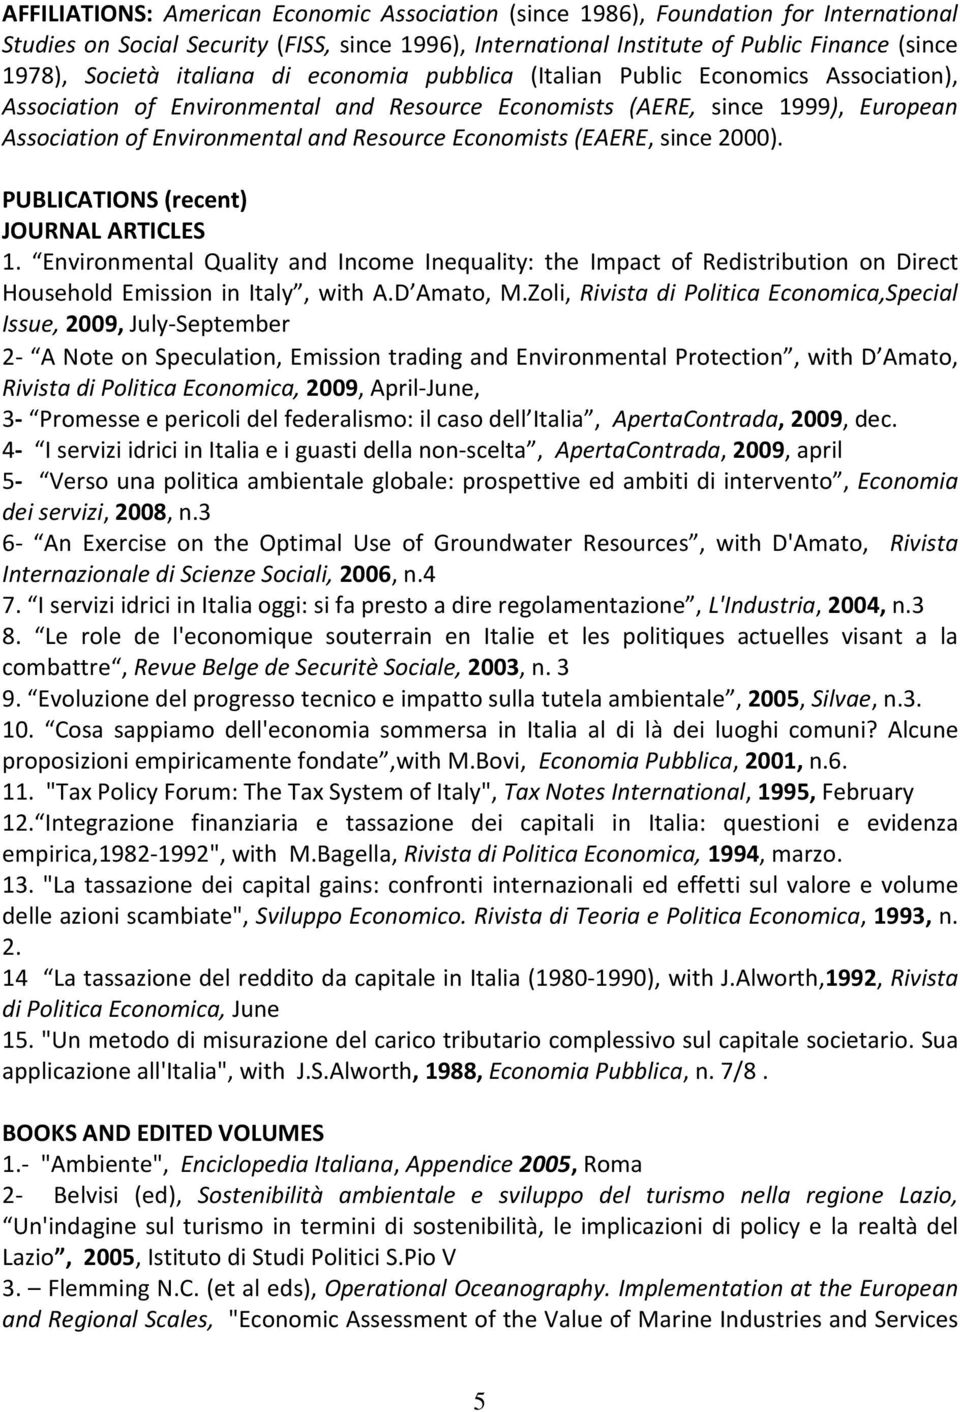 Economists (EAERE, since 2000). PUBLICATIONS (recent) JOURNAL ARTICLES 1. Environmental Quality and Income Inequality: the Impact of Redistribution on Direct Household Emission in Italy, with A.